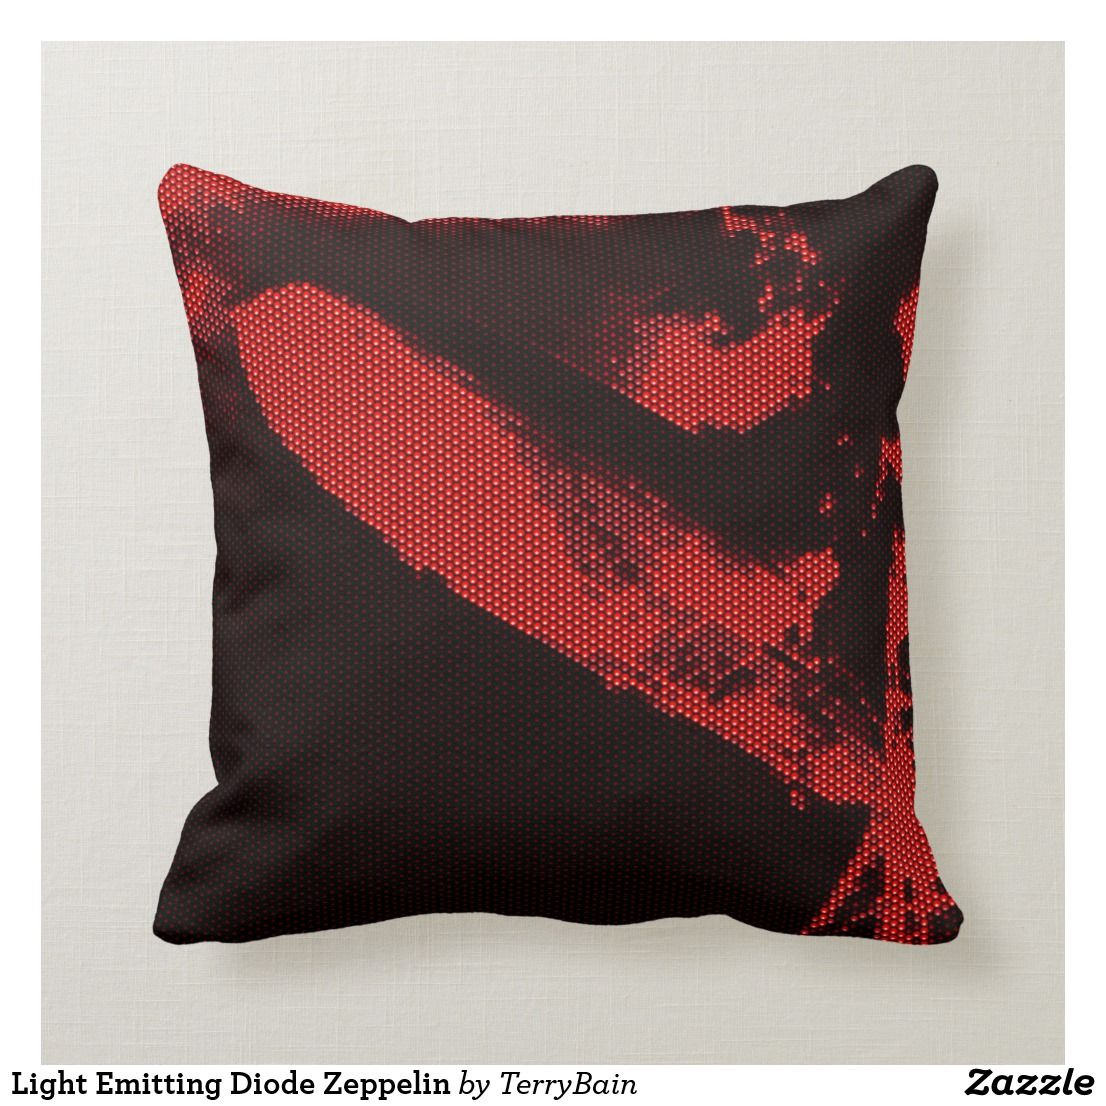 Light Emitting Diode Zeppelin Throw Pillow #lightemittingdiode